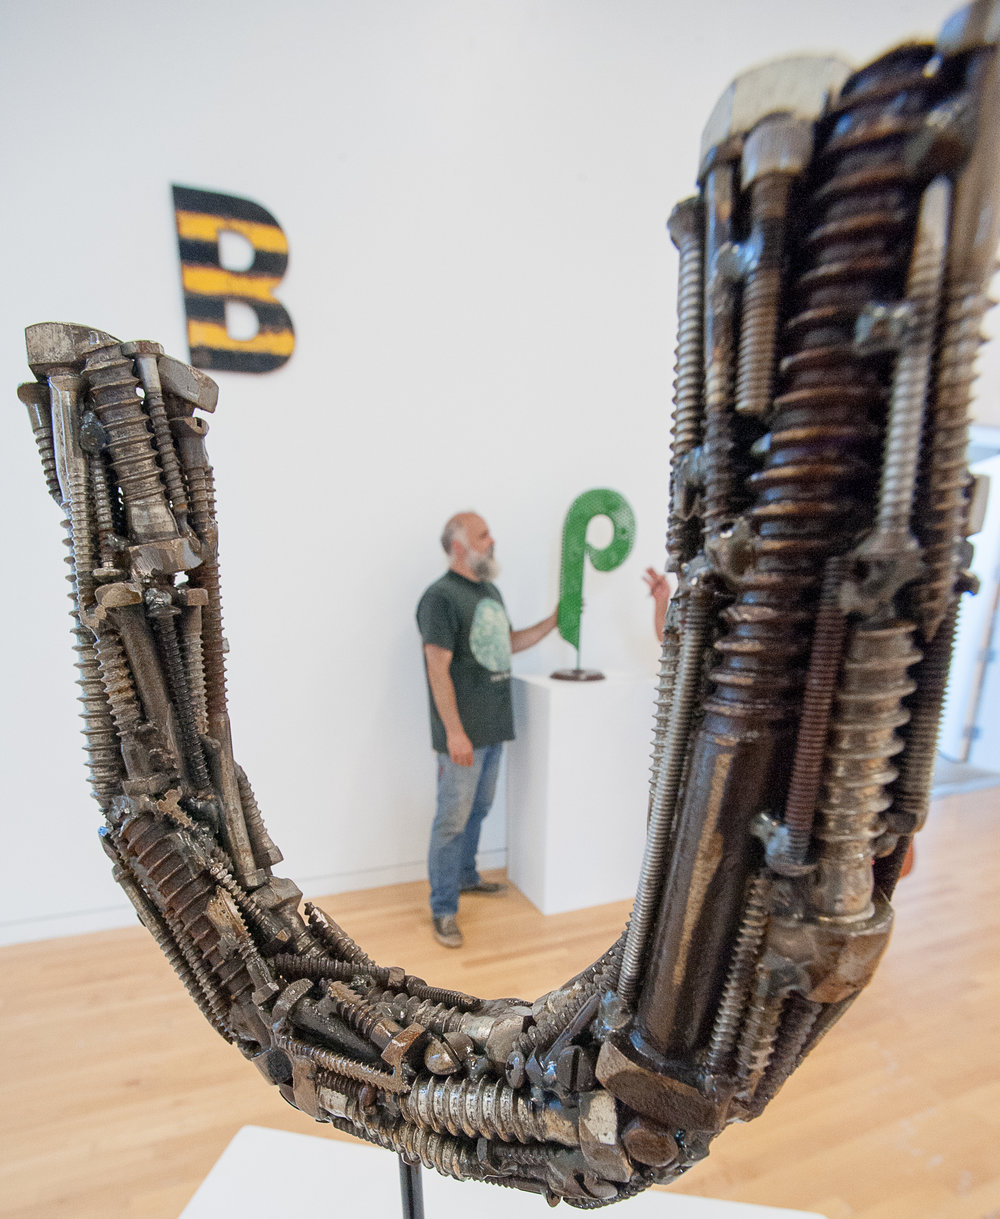 - 'Sculpture Soup' scrap art showing at UMFSUN JOURNAL